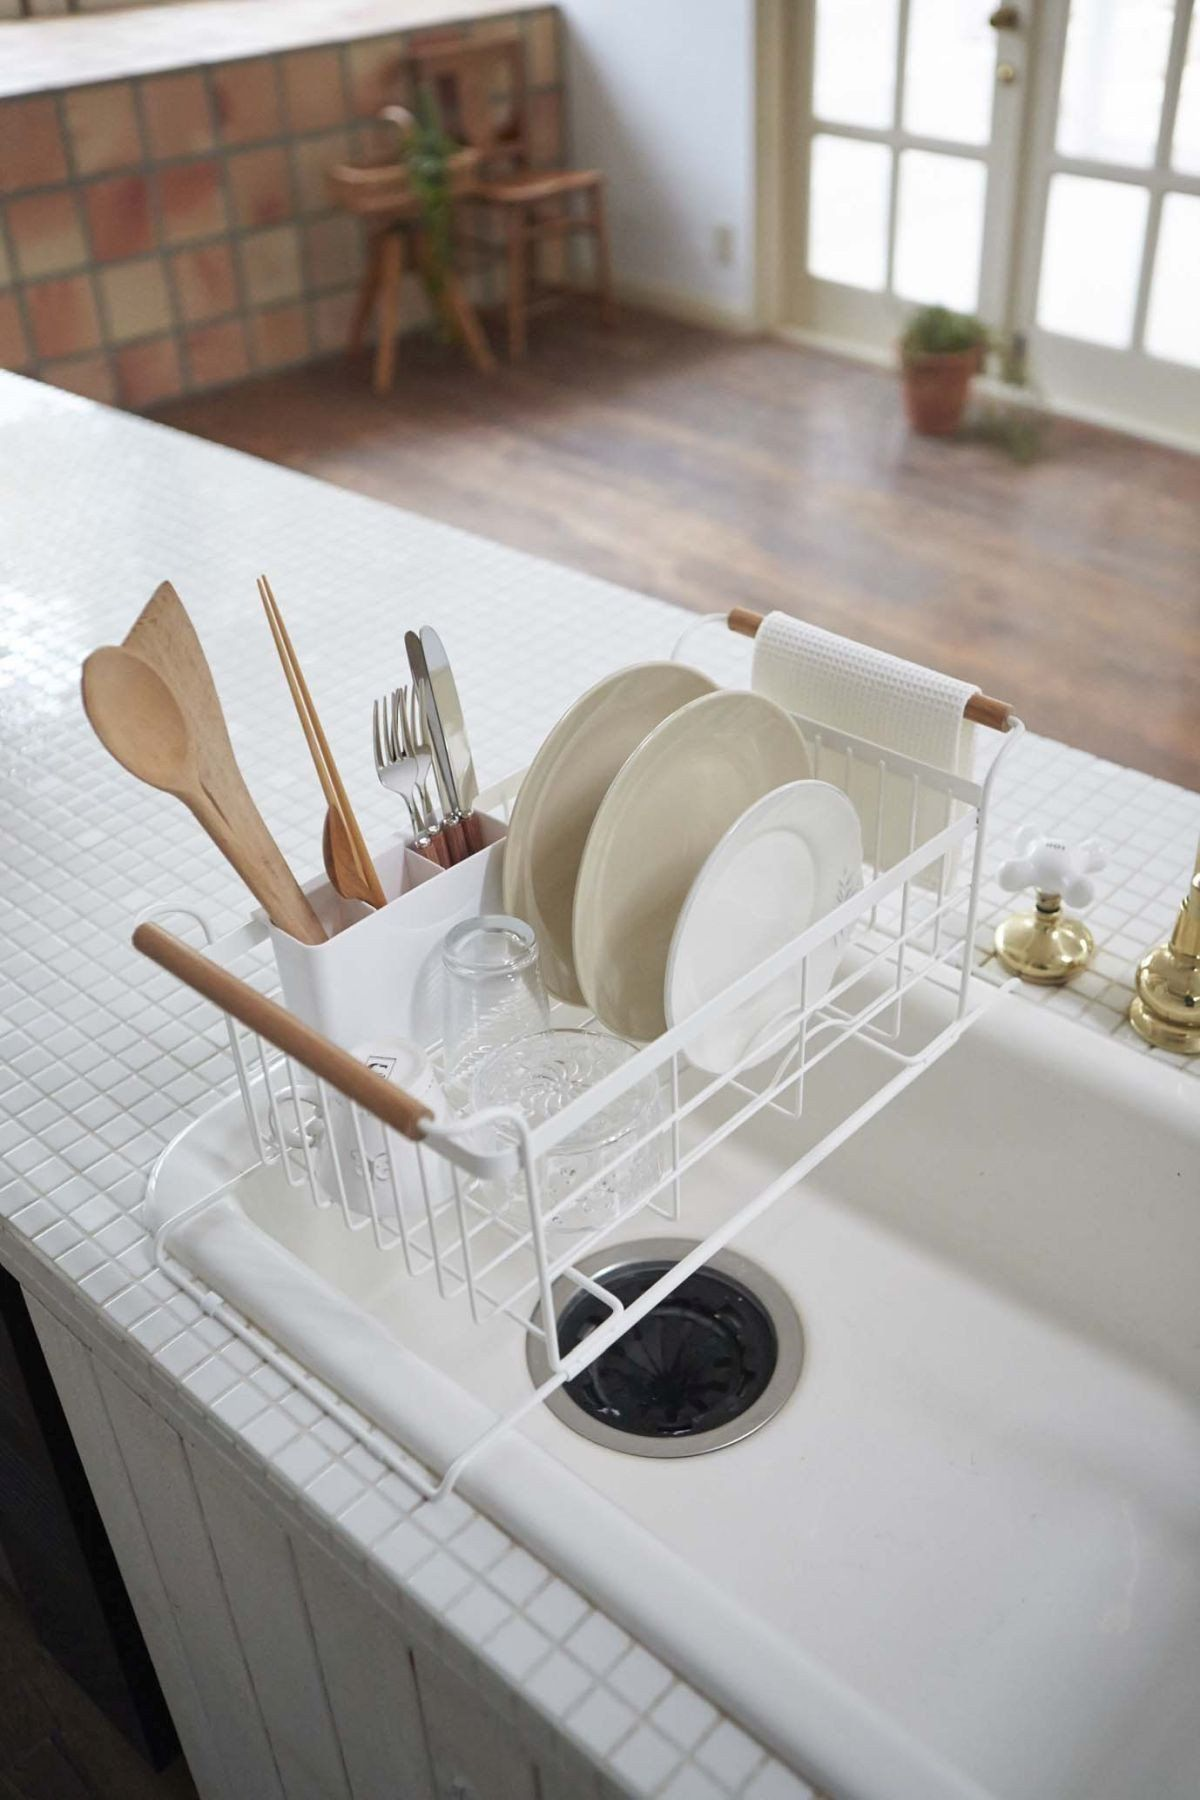 Meuble Cuisine Rangement Nourriture tosca over-the-sink dish drainer rack in white design